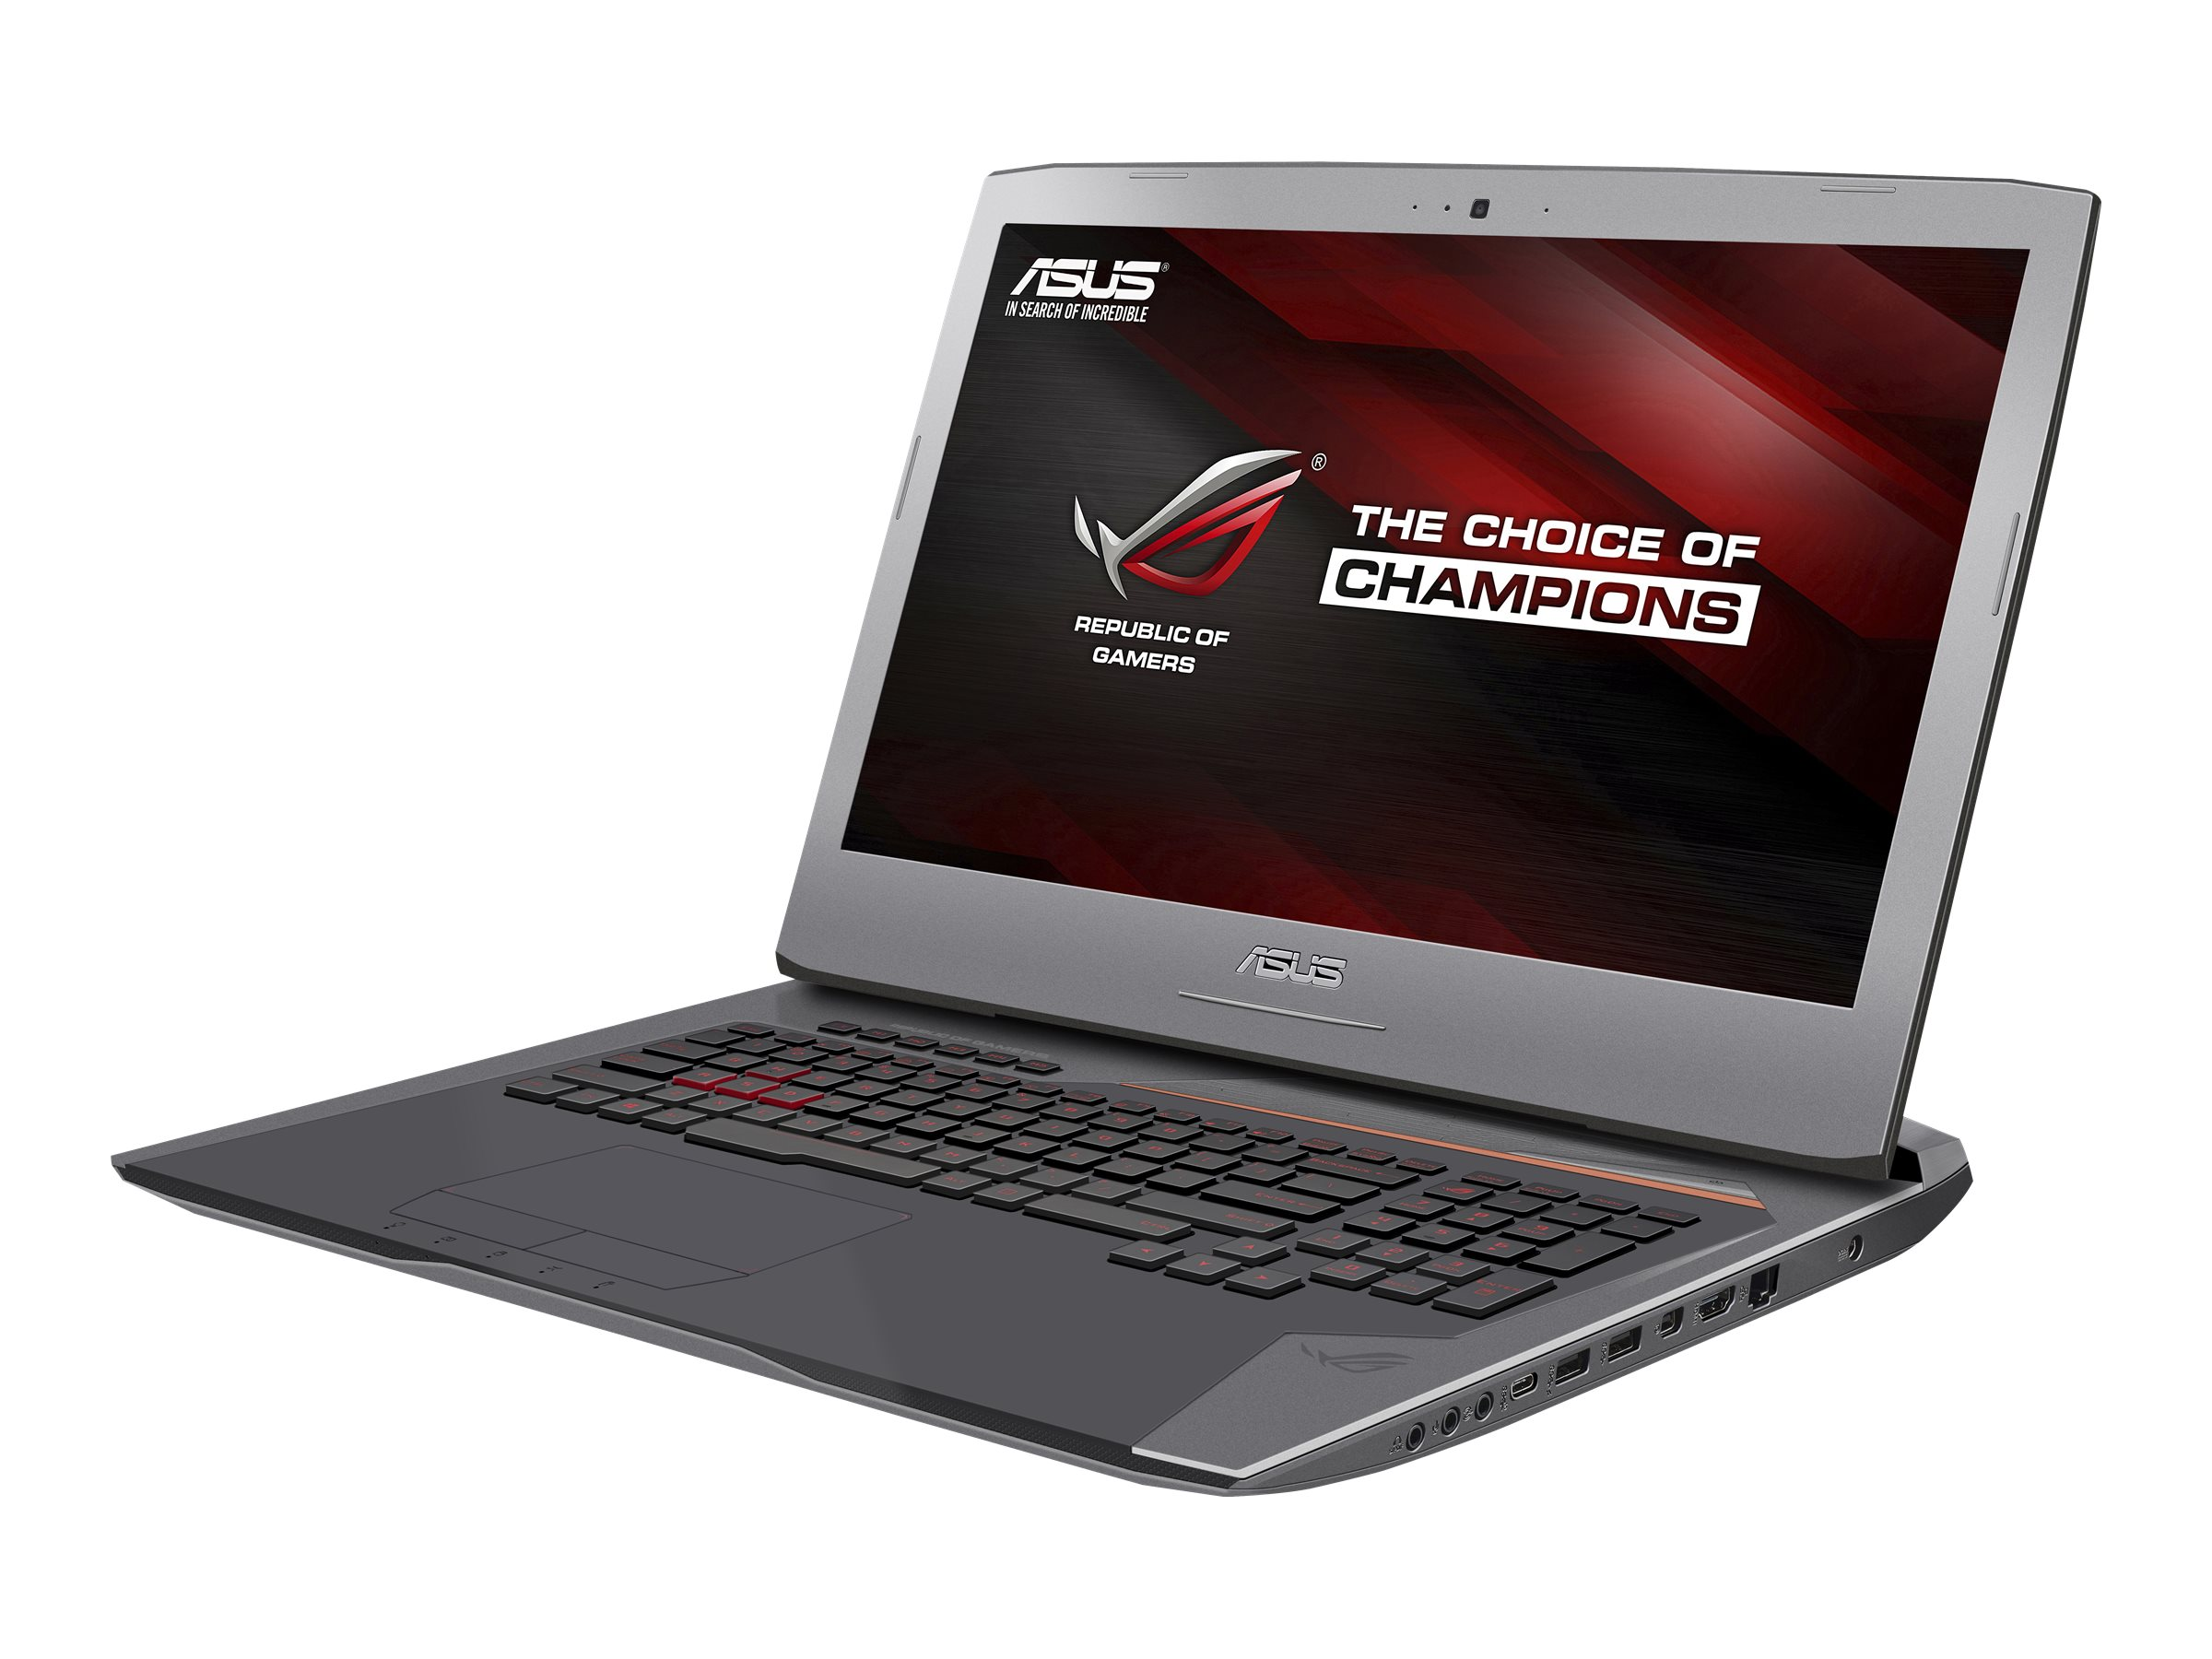 Asus G752VT-DH72 17.3 Notebook PC, G752VT-DH72, 30718996, Notebooks